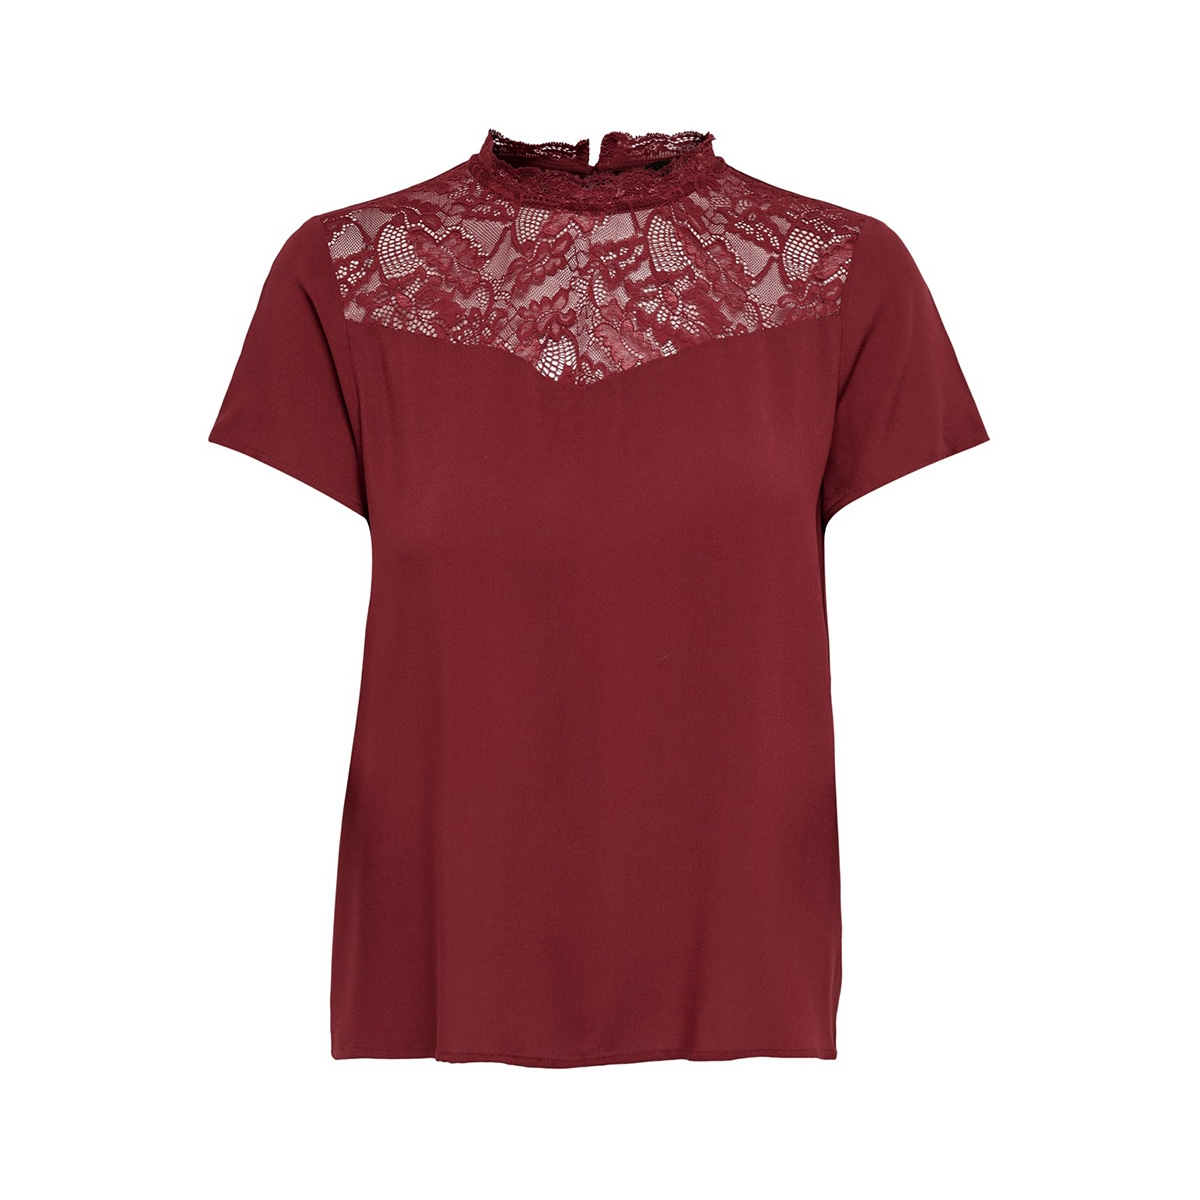 onlfirst ss lace top noos wvn 15191412 only t-shirt merlot